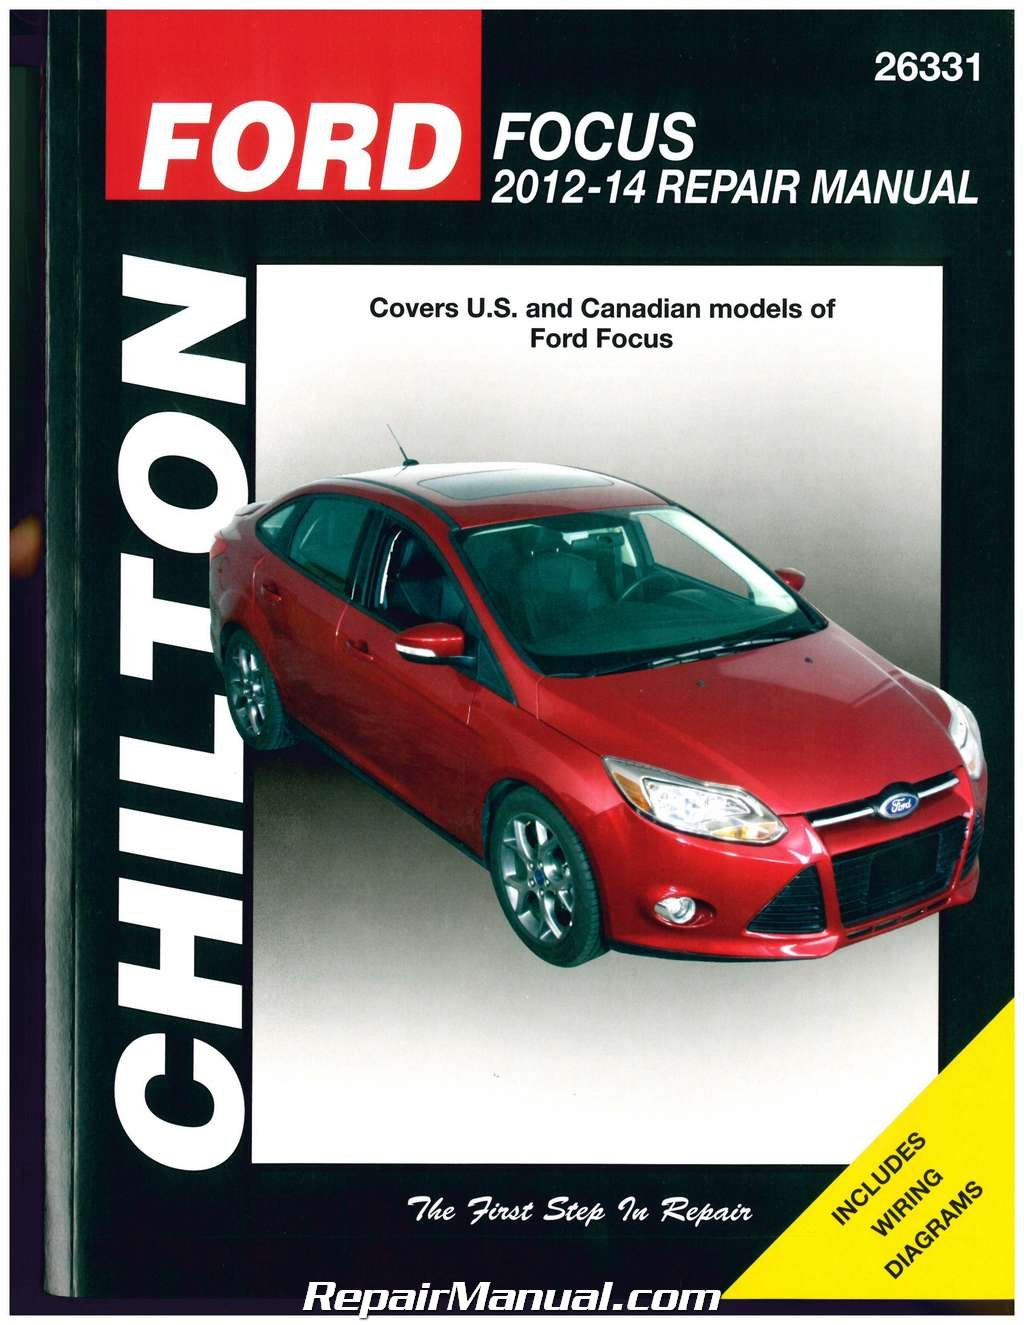 CH26331 Ford Focus 2012 2013 2014 Chilton Automotive Repair Manual:  Manufacturer: Amazon.com: Books